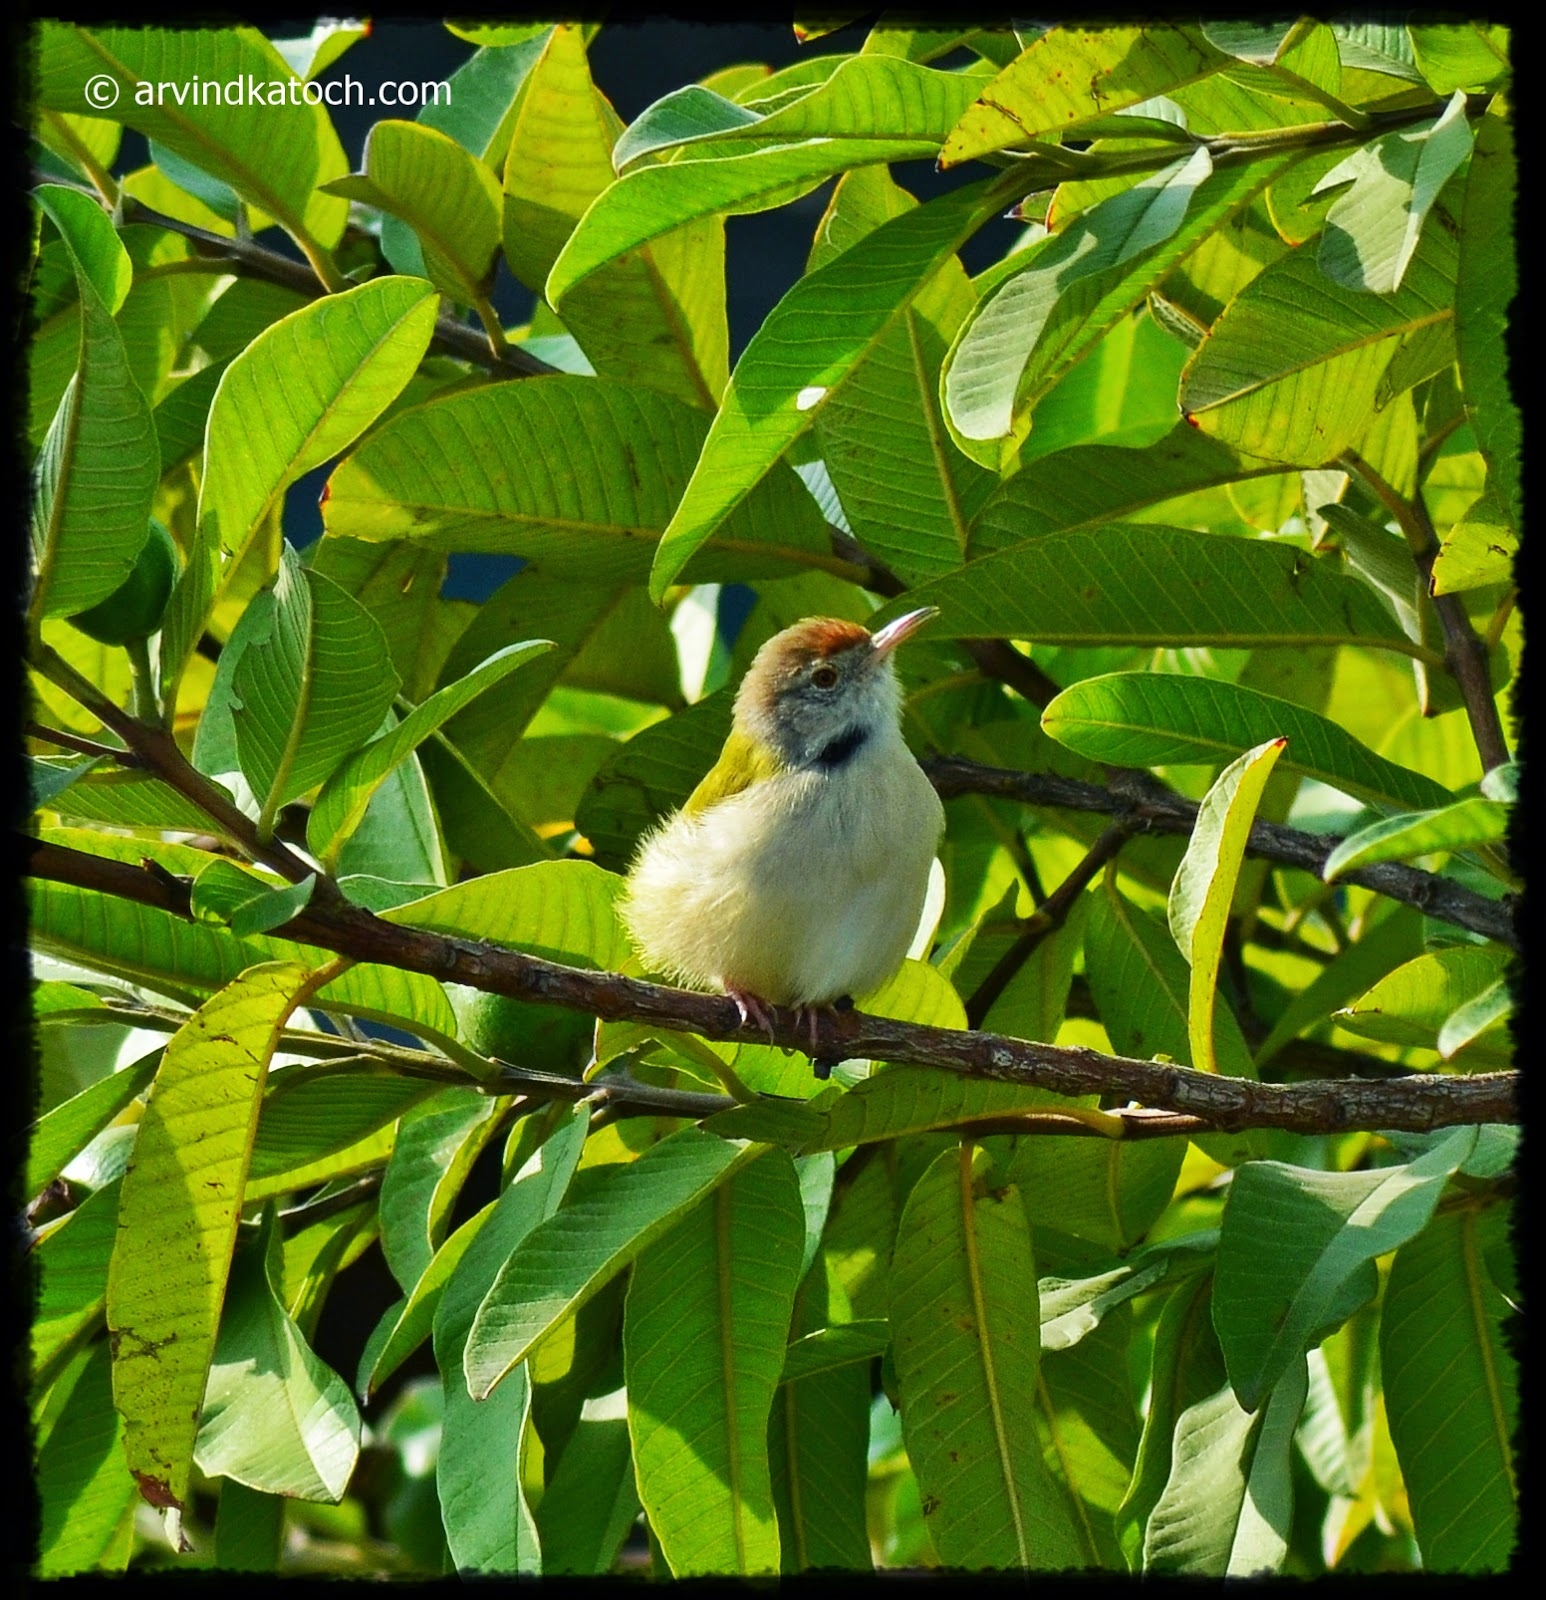 Small Bird, Songbird, Common Tailorbird